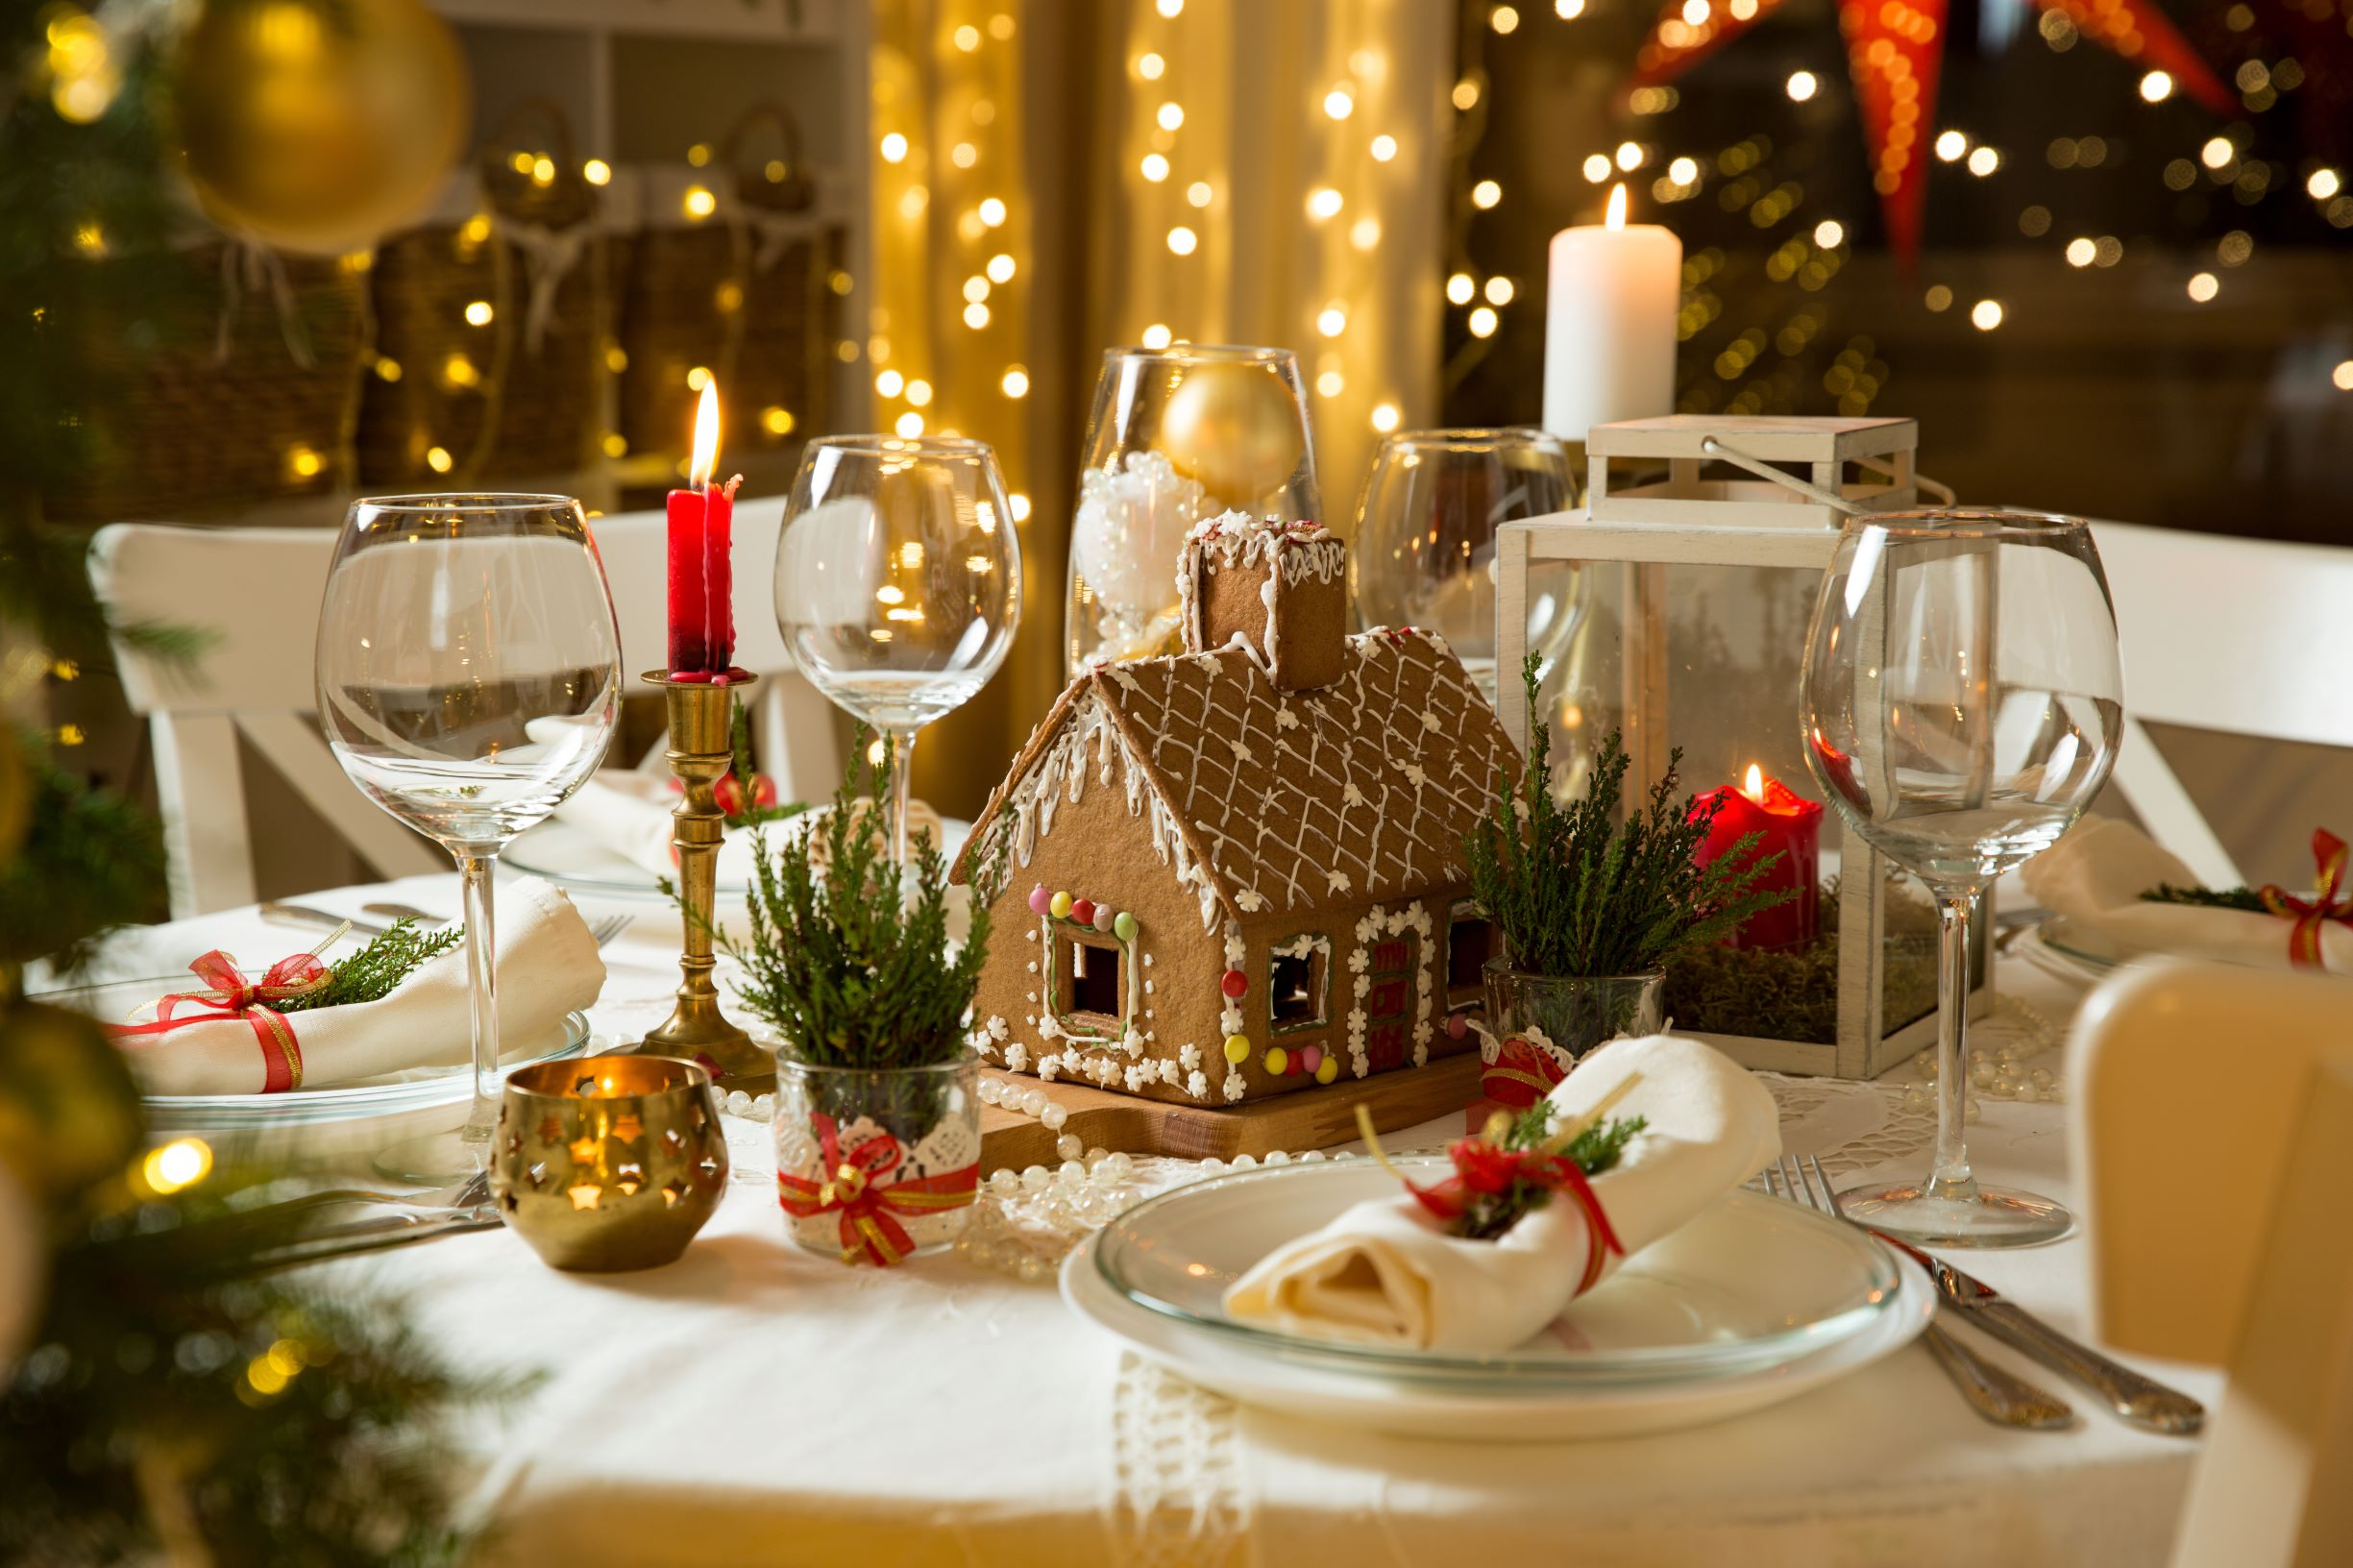 Christmas table with a ginger bread house centerpiece.